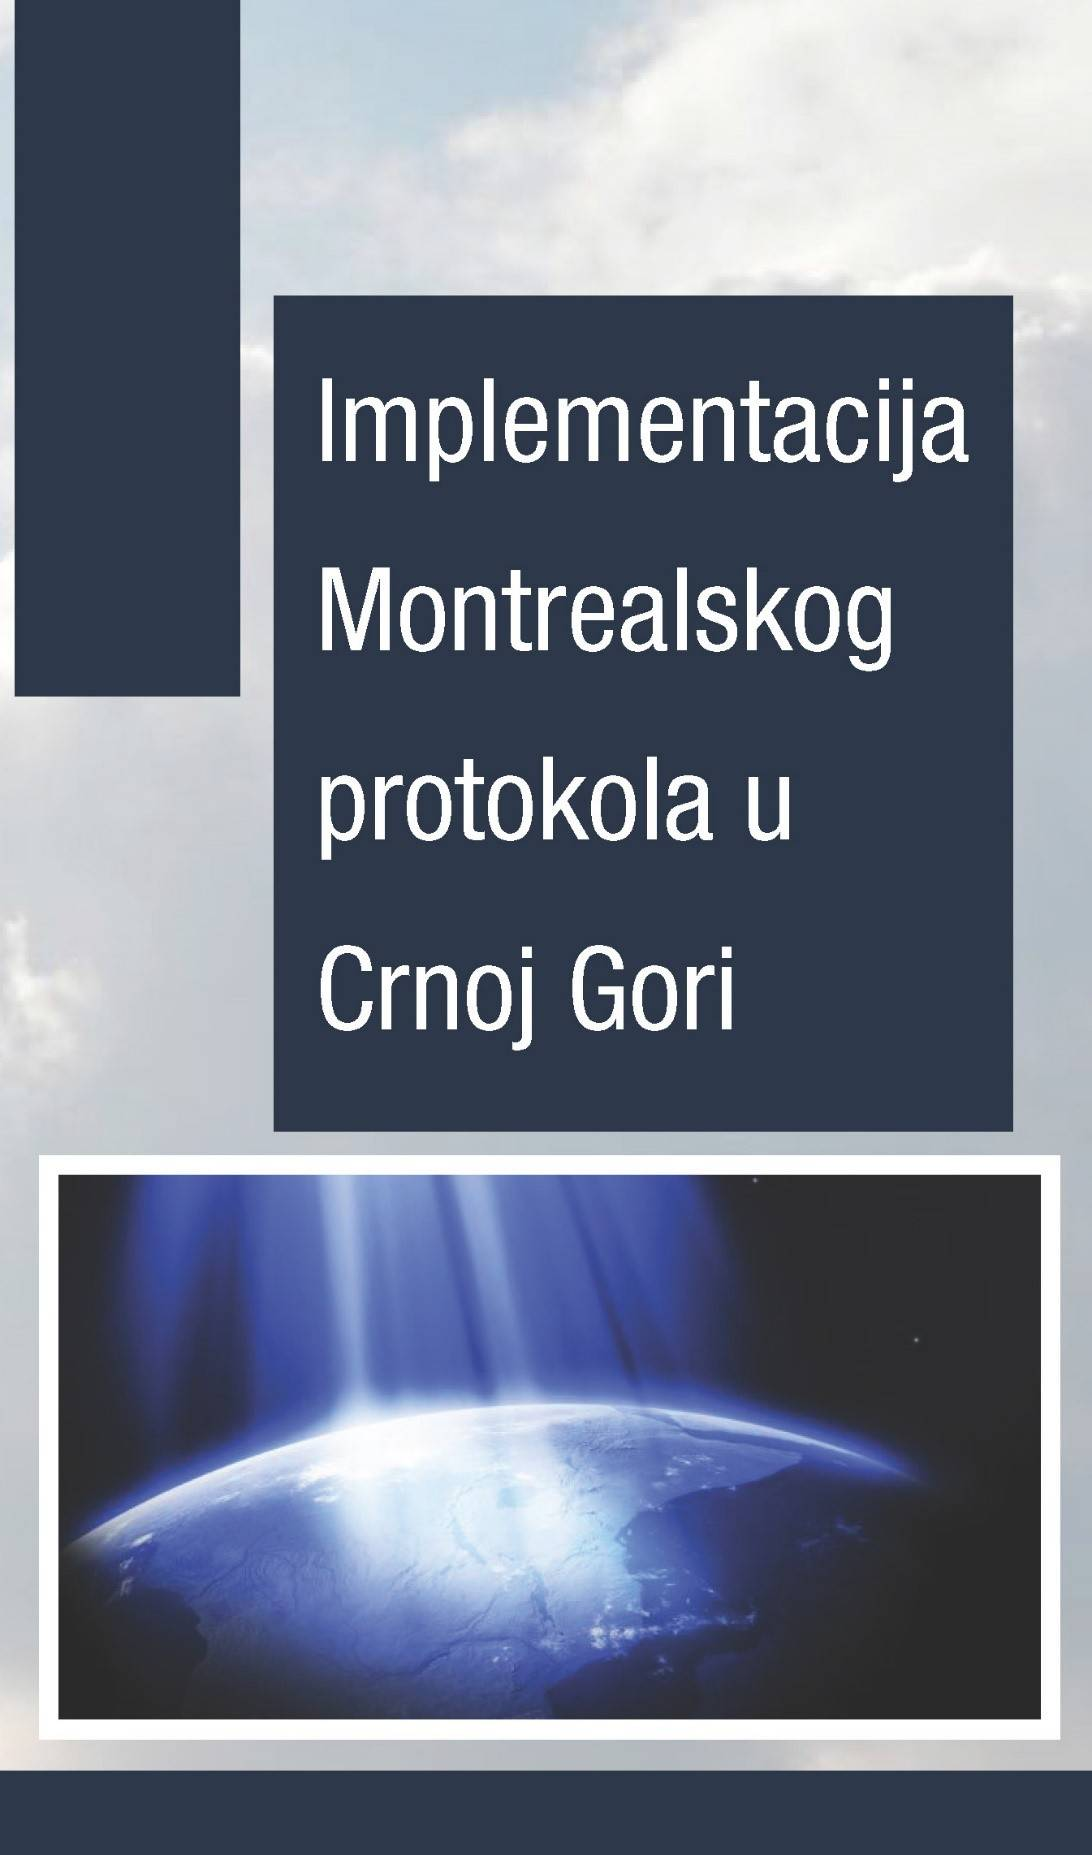 Implementation of the Montreal Protocol in Montenegro